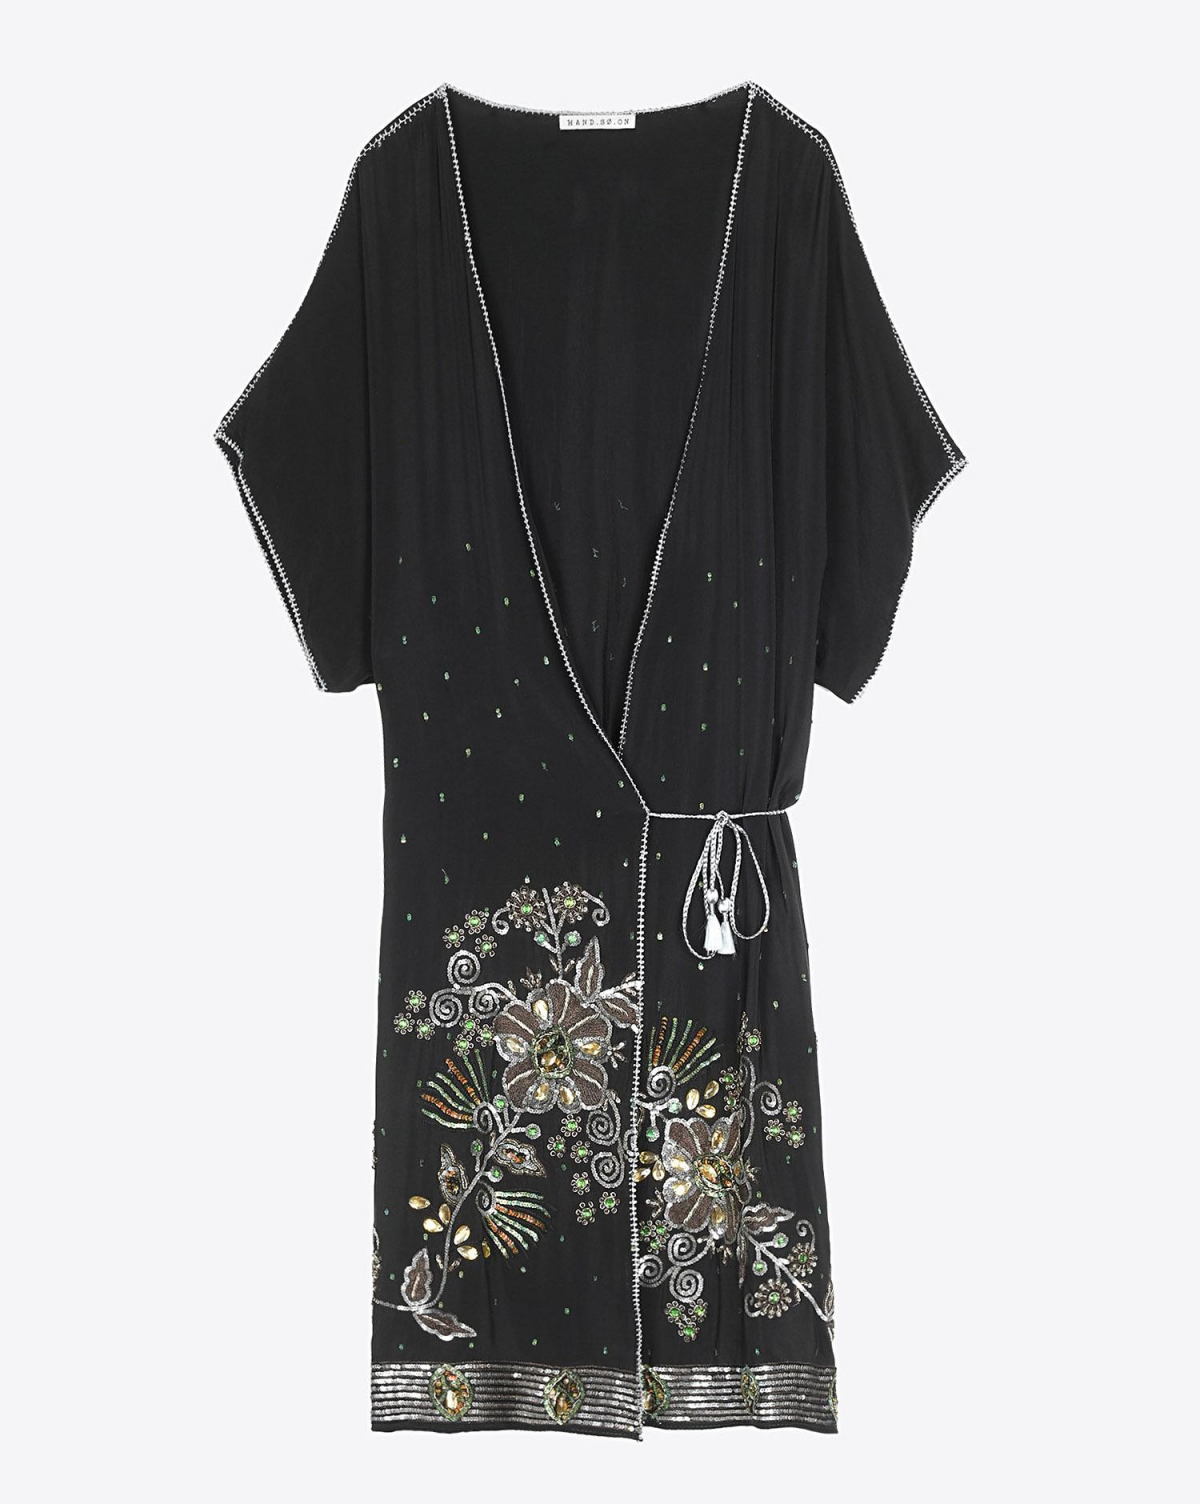 Hand.So.On Kimono Robe 853